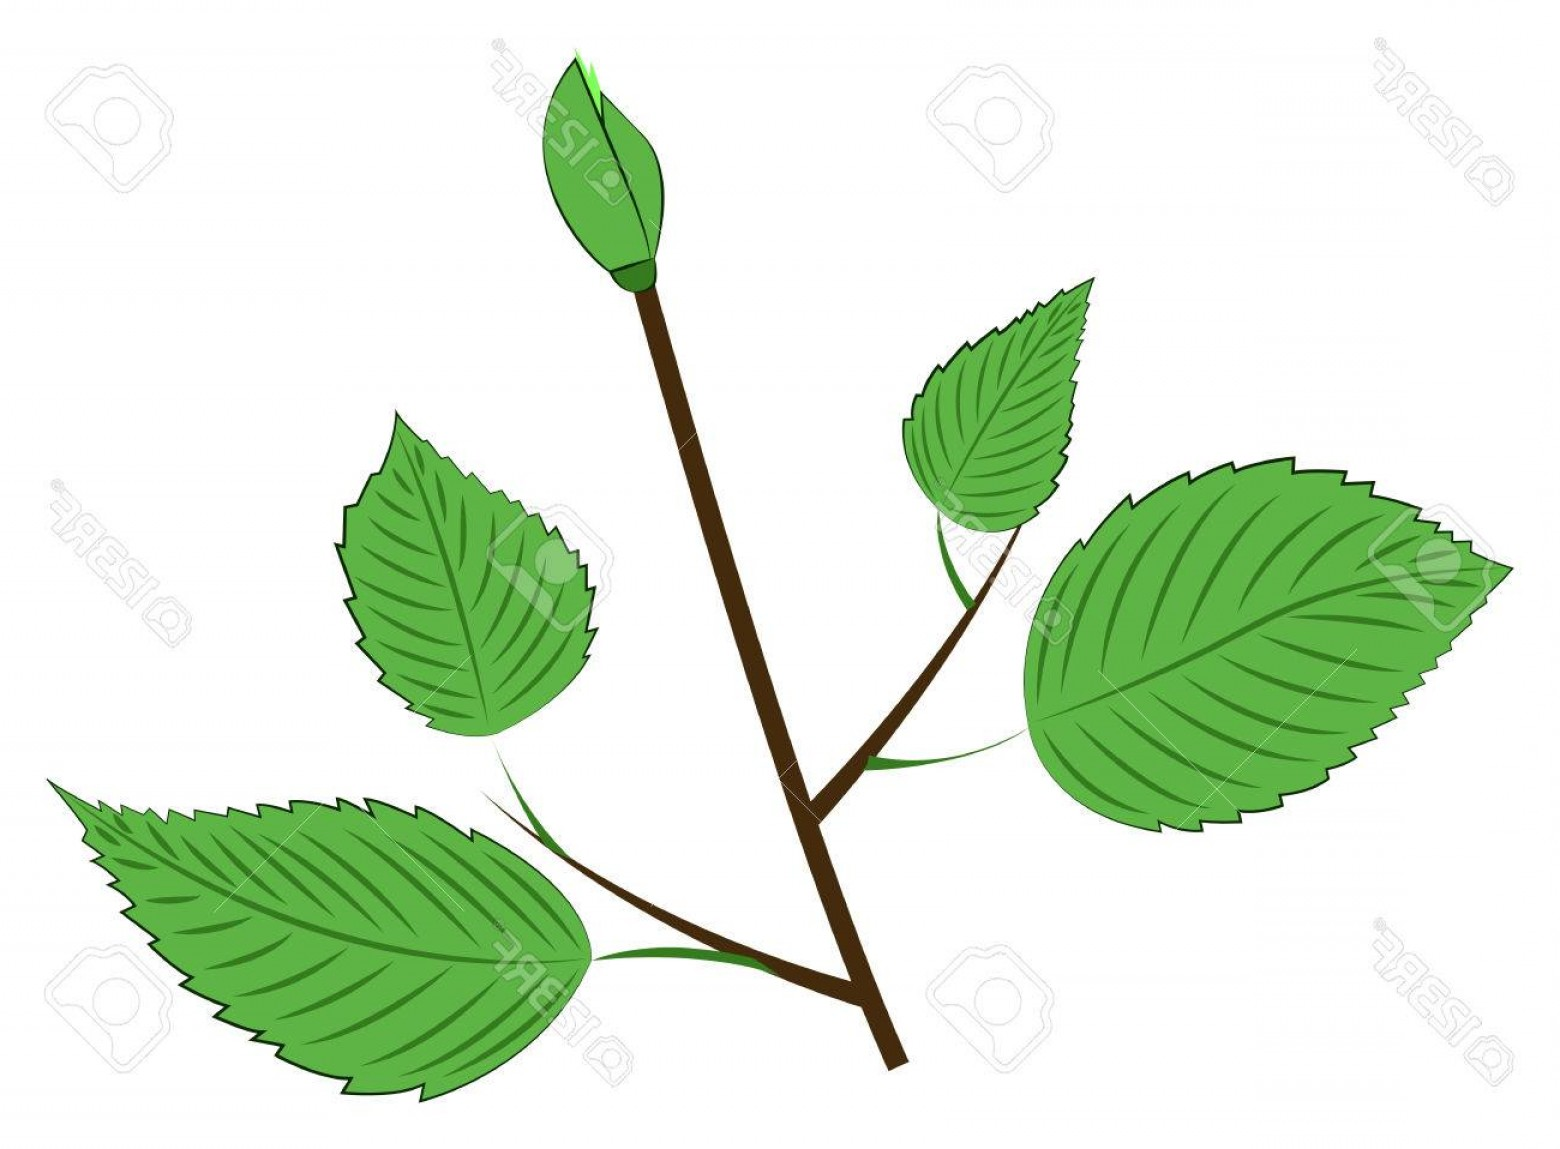 Bud Vector: Photostock Vector Young Branch With Leaves And Bud Vector Illustration